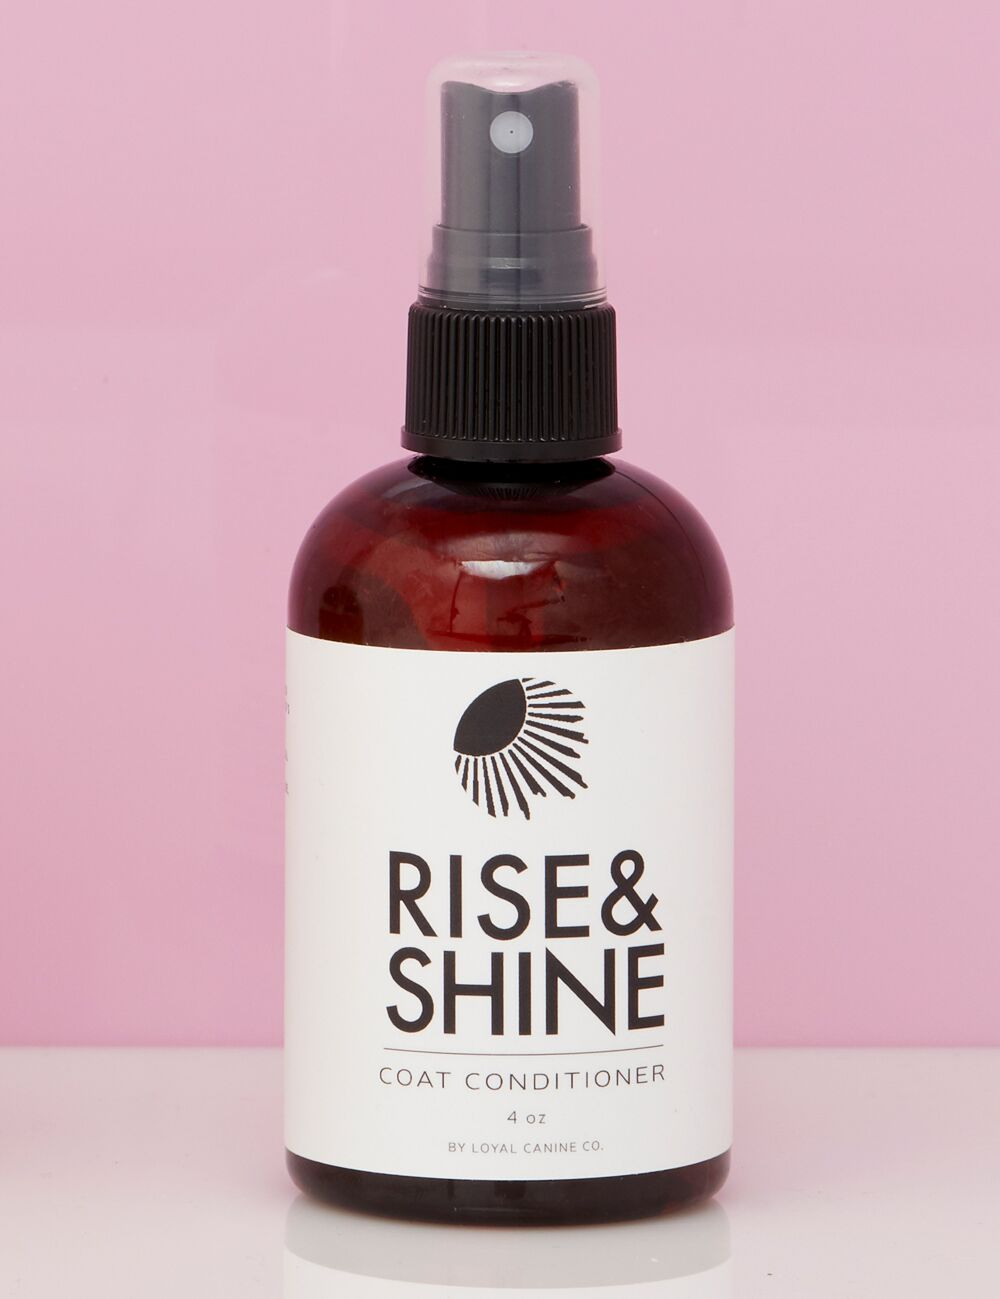 Rise & Shine Coat Conditioner